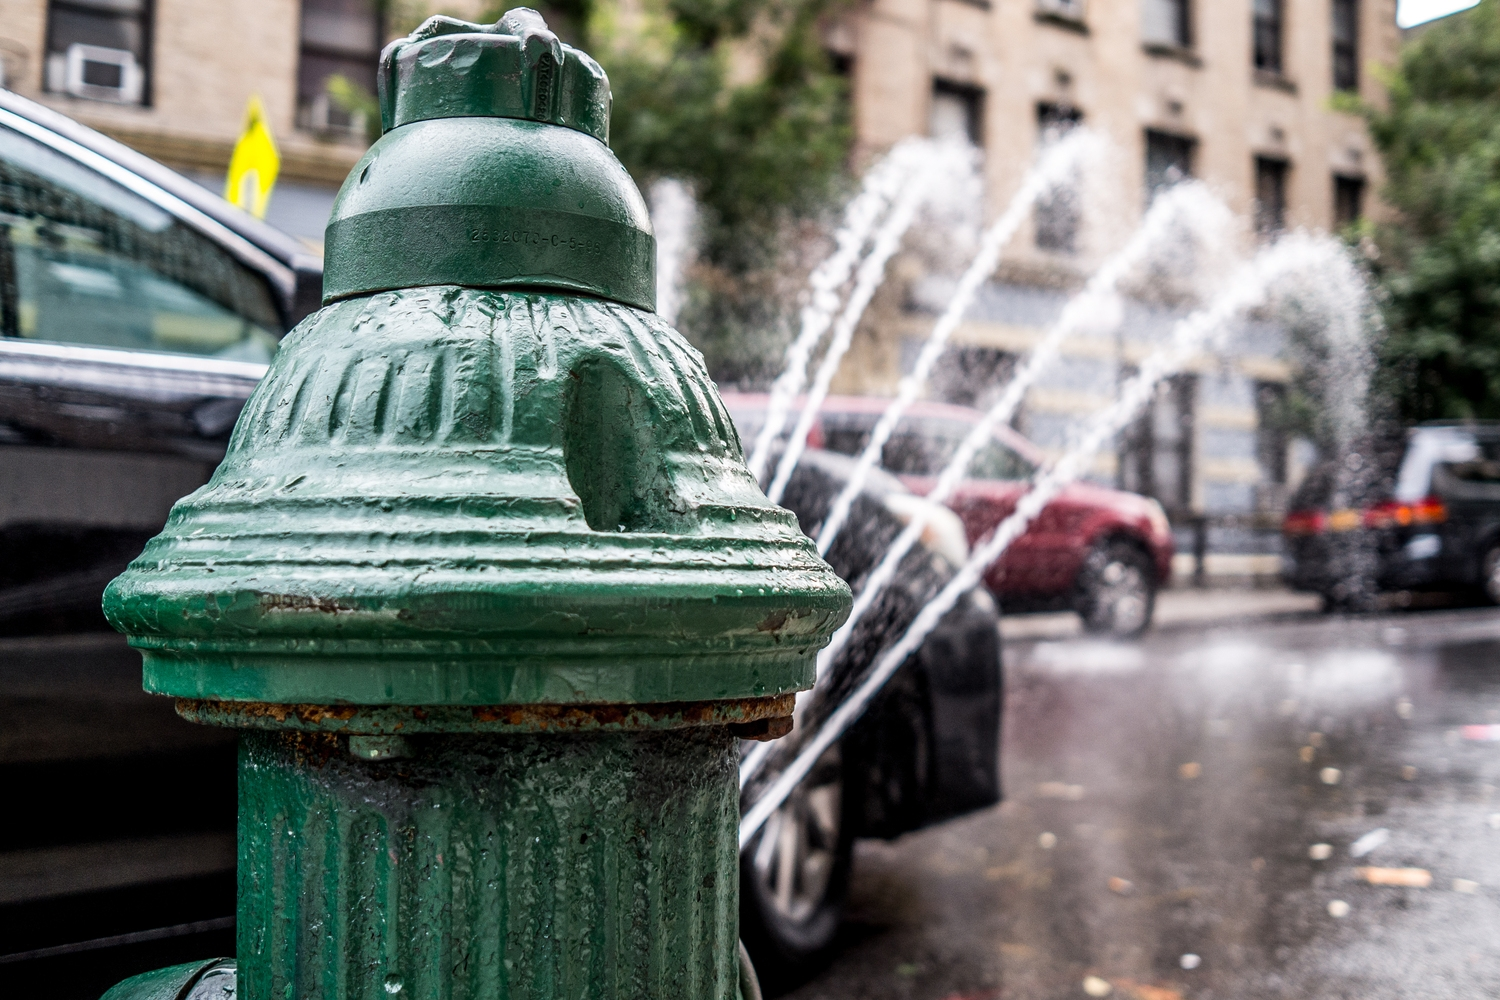 Classic NYC Summer | An open hydrant spraying water on a hot summer day.